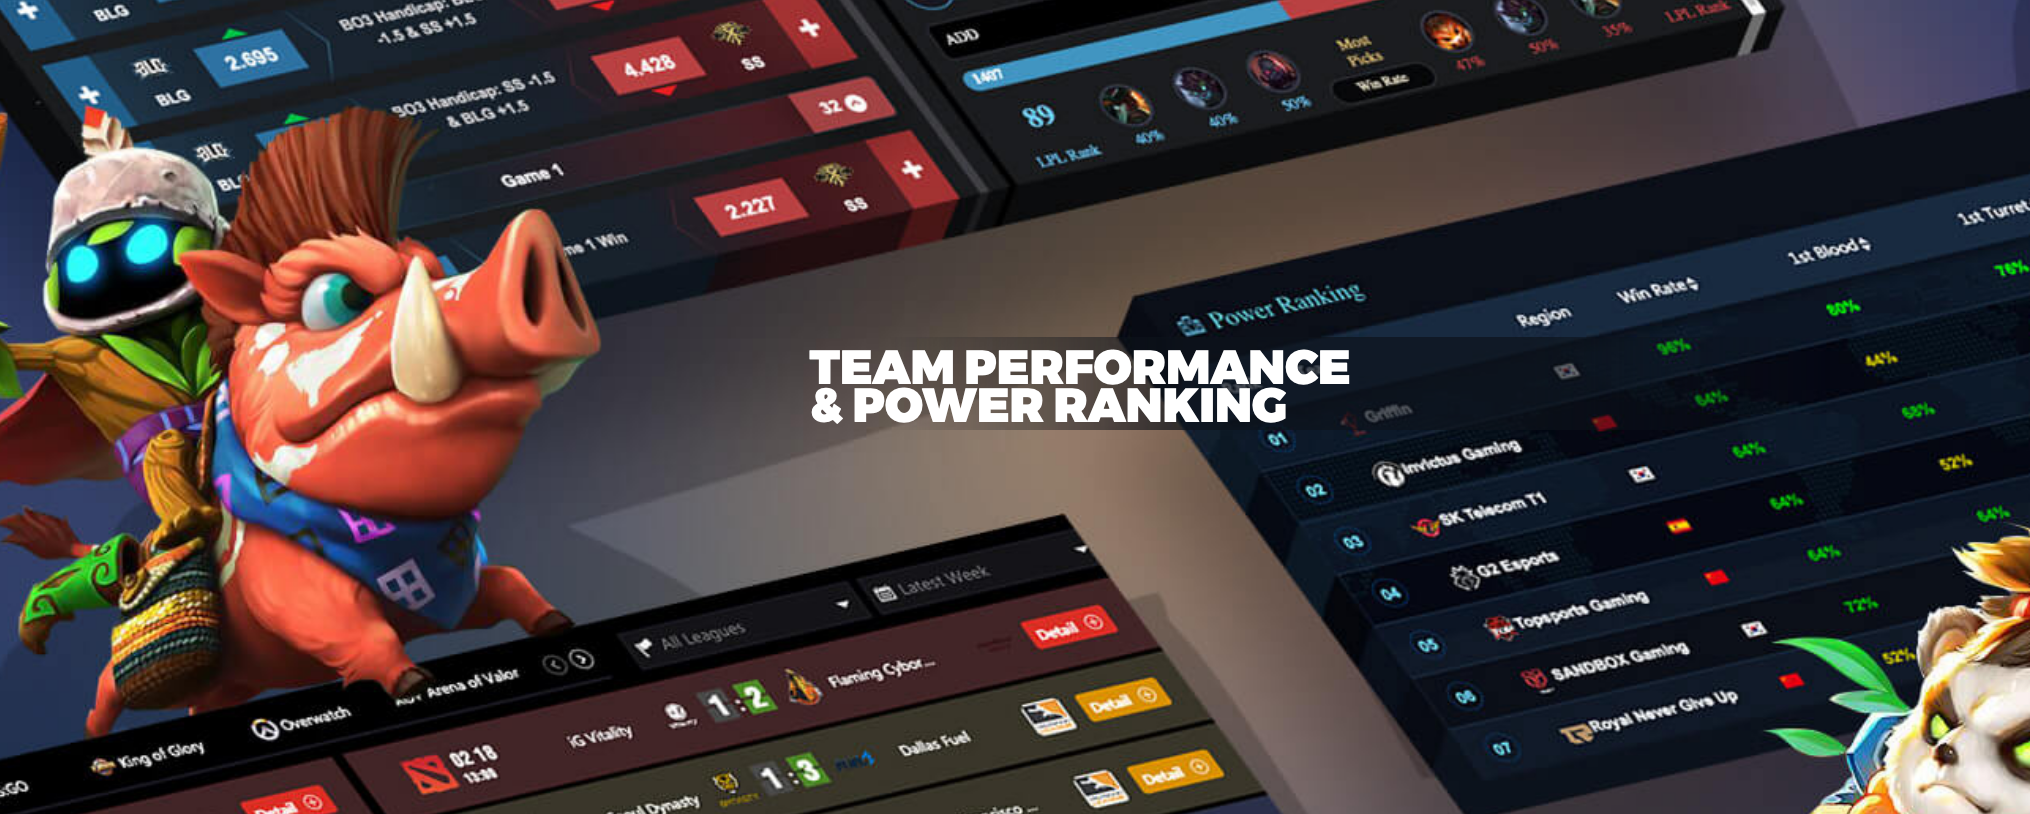 IMEsports TEAM PERFORMANCE & POWER RANKING